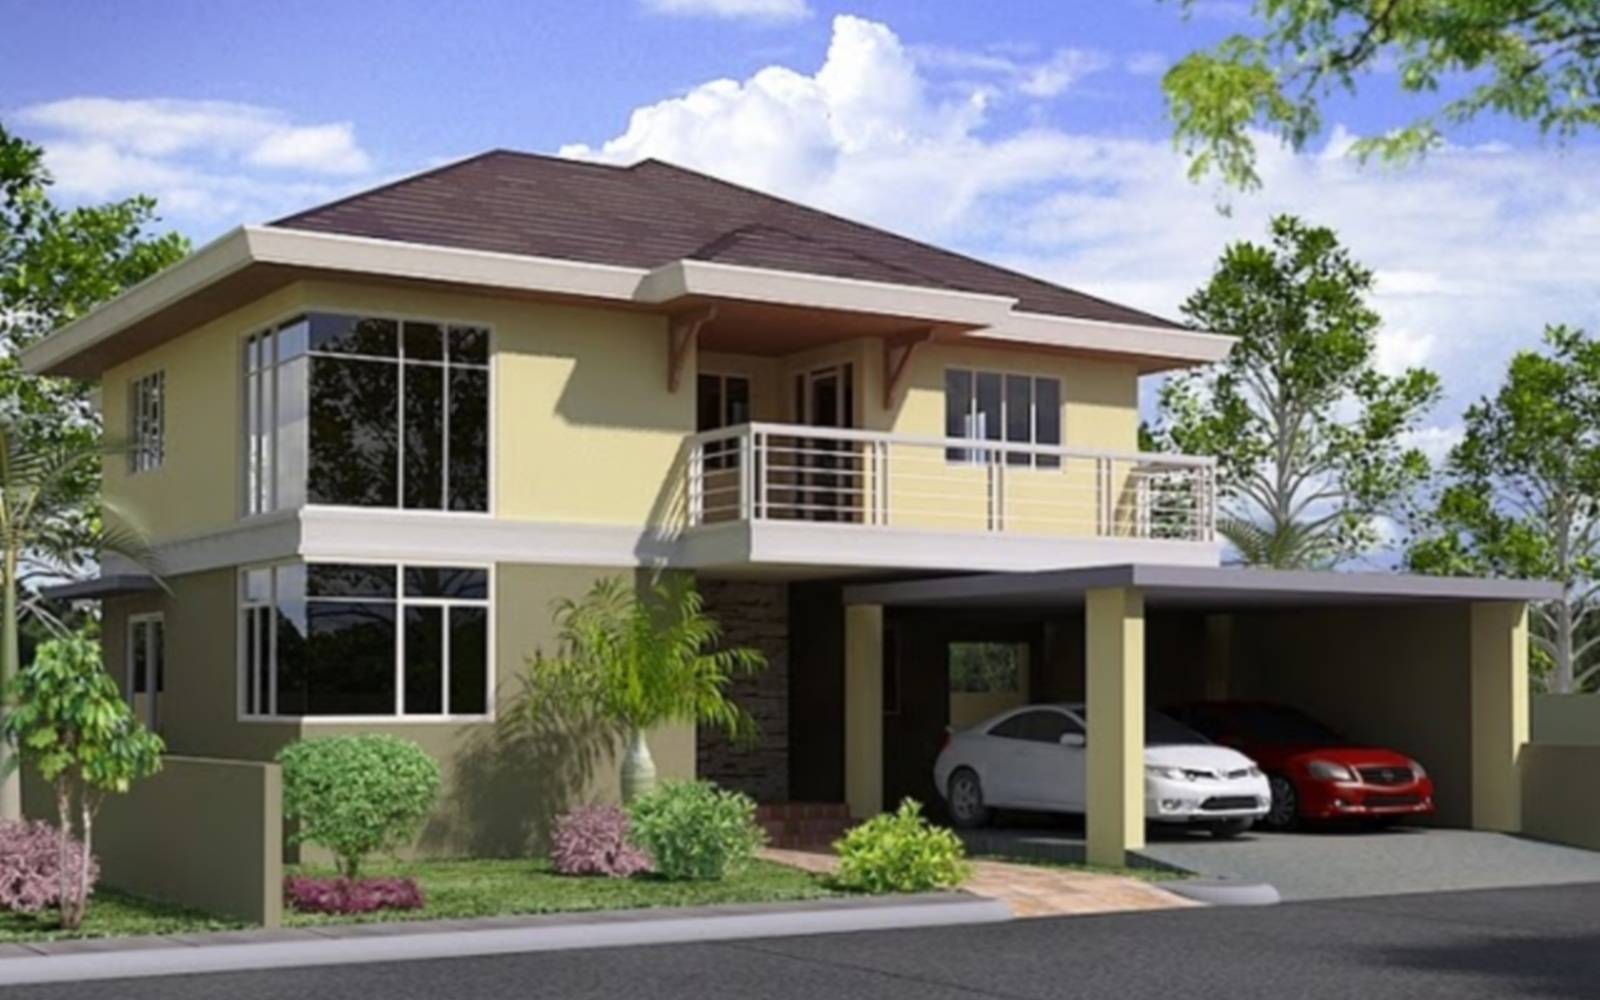 Kk two storey house plan philippines photoshop hd House plans two storey